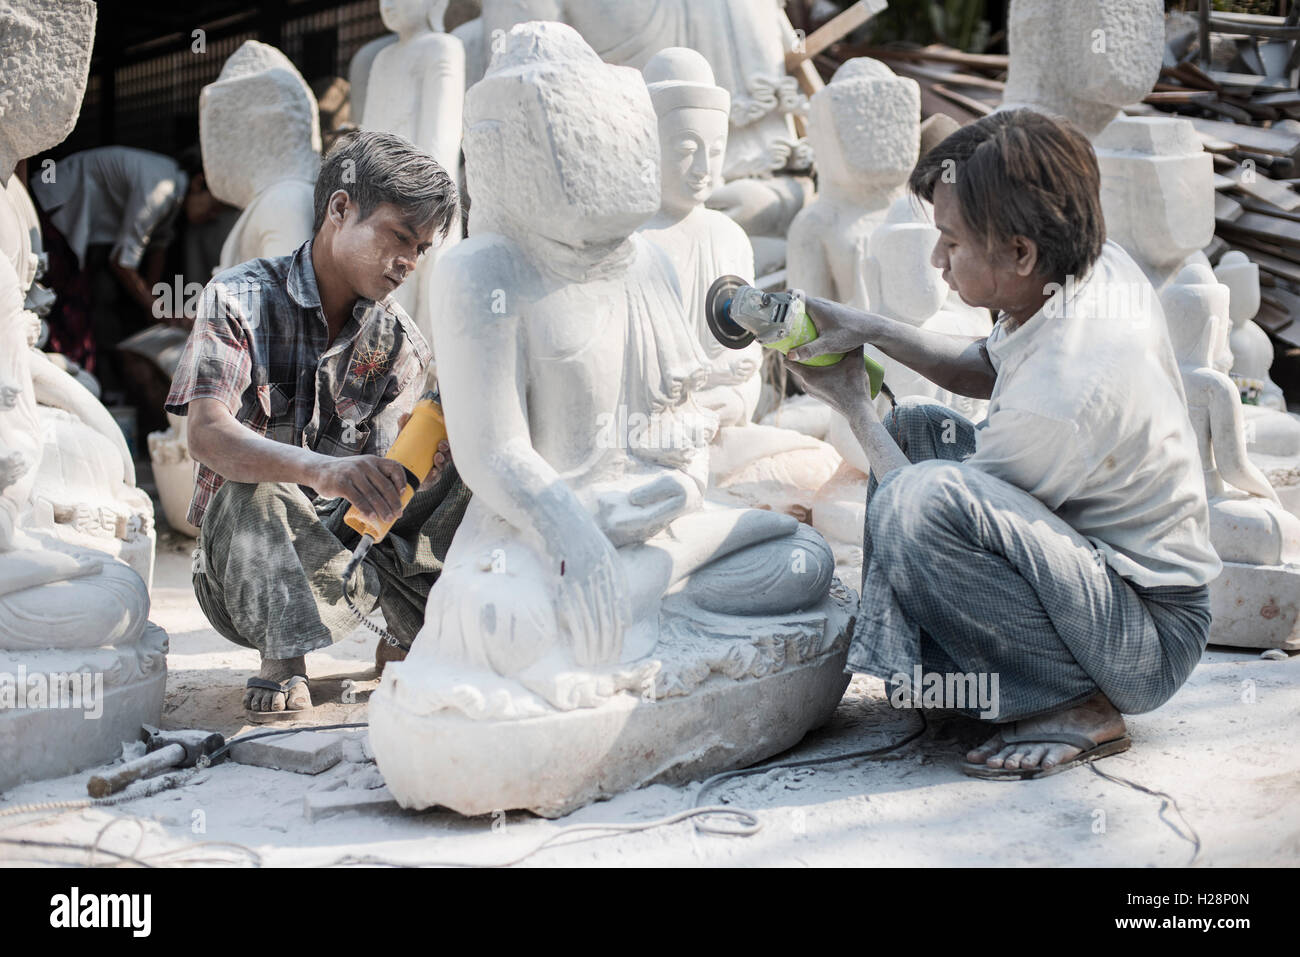 Local men carving a marble Buddha statue using an angle grinder, Amarapura, near Mandalay, Myanmar. - Stock Image